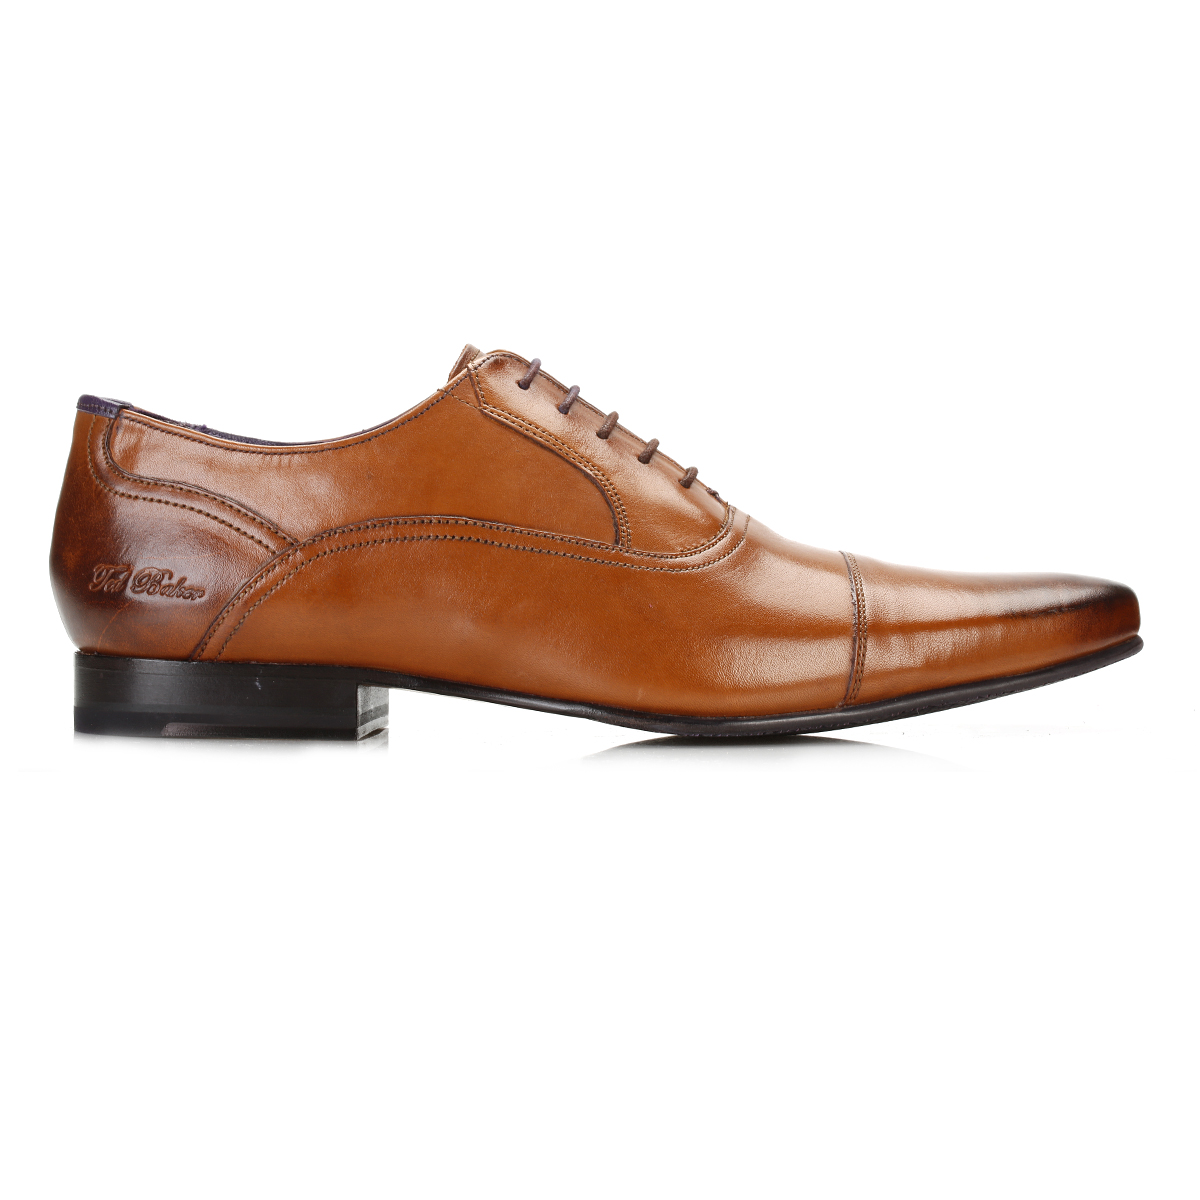 Ted Baker Wedding Shoes Sale